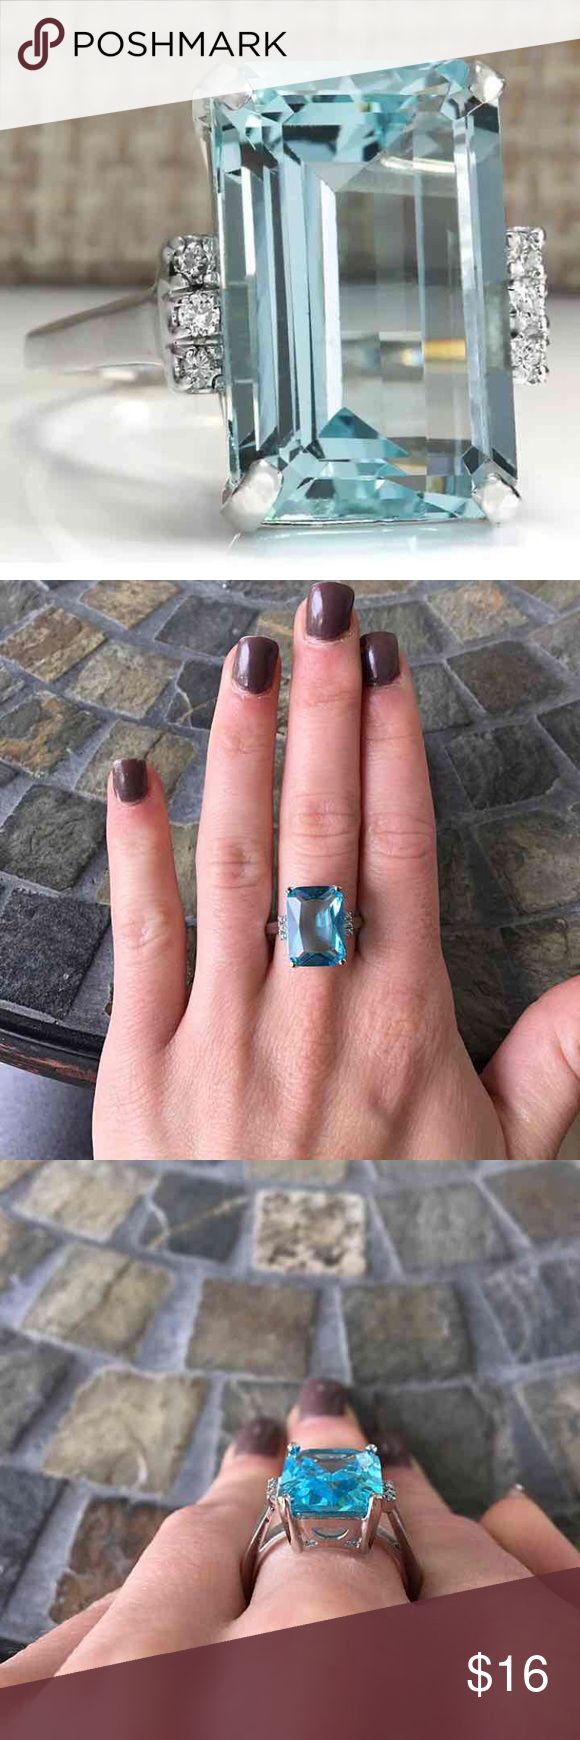 Emerald Cut Aqua Silver Engagement Ring Gorgeous 6.35ct emerald Aqua center stone 3 small round stones on either side Silver plated FIRM PRICE/NO TRADES❗ Jewelry Rings